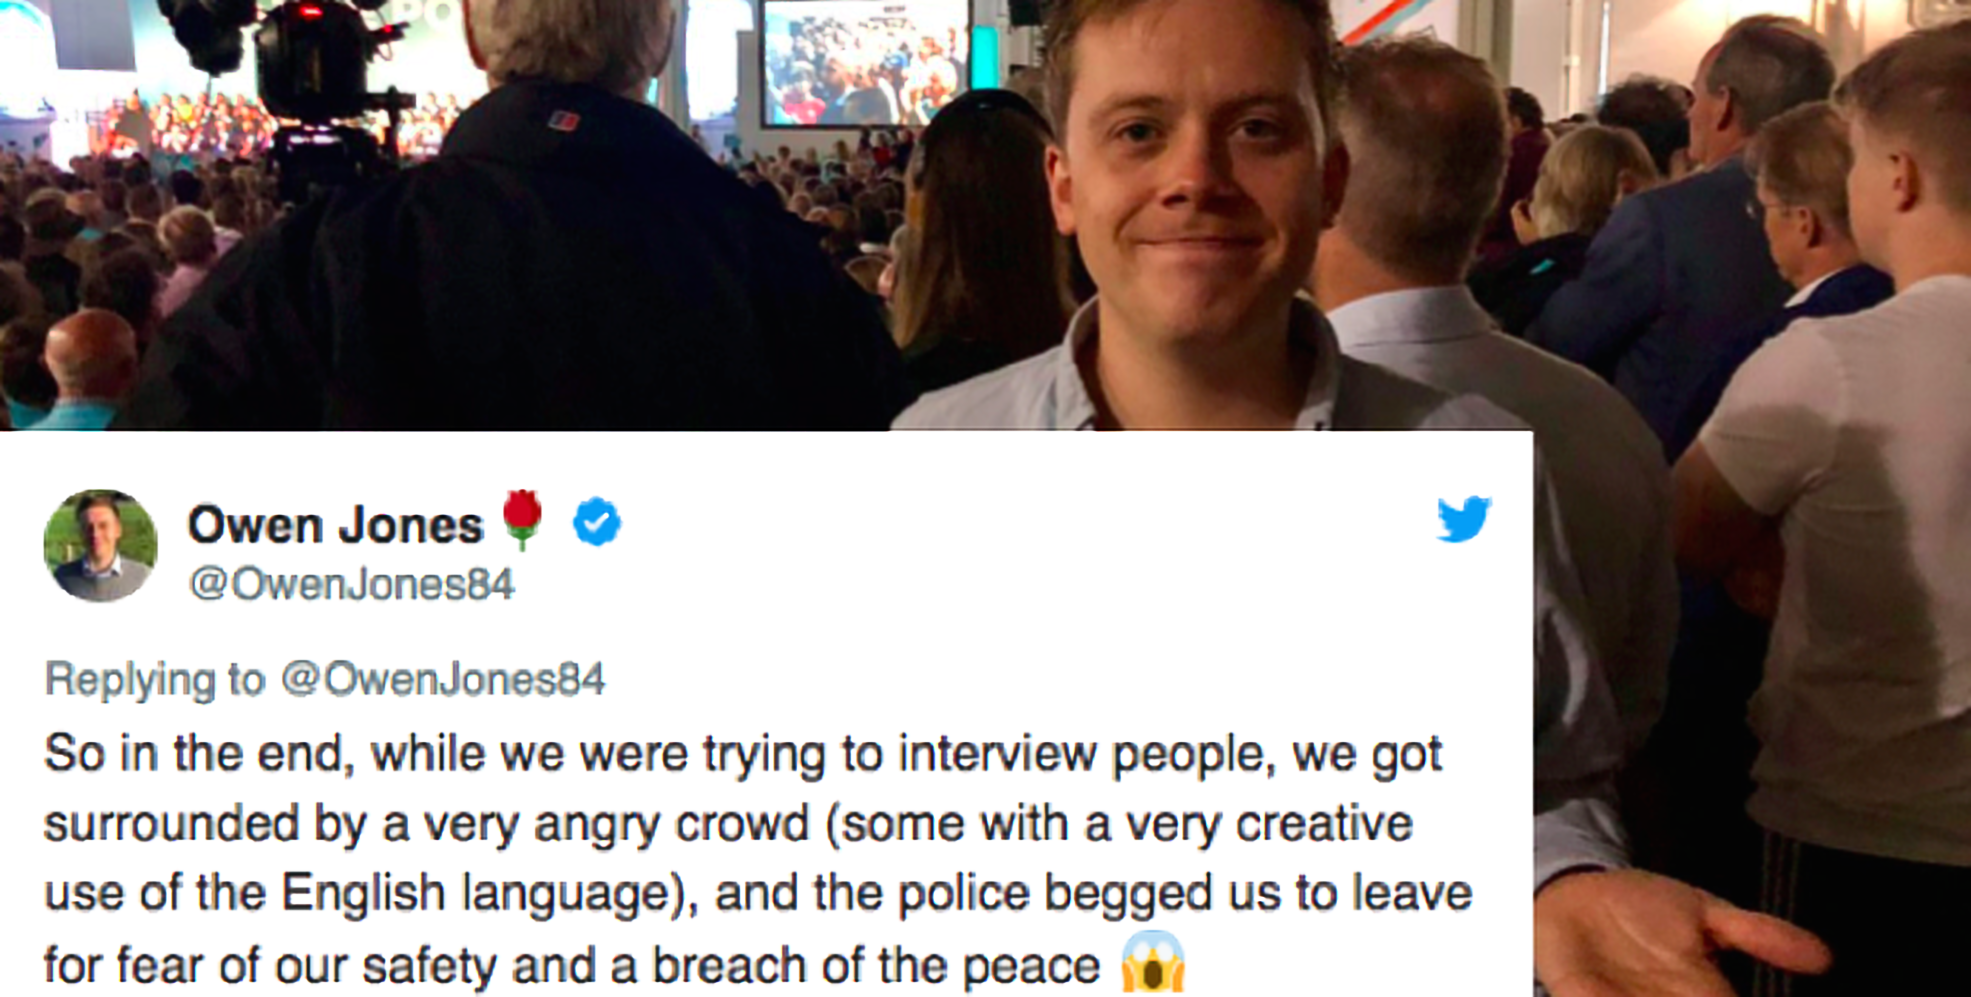 Brexit Party: Owen Jones 'surrounded' by angry crowd at